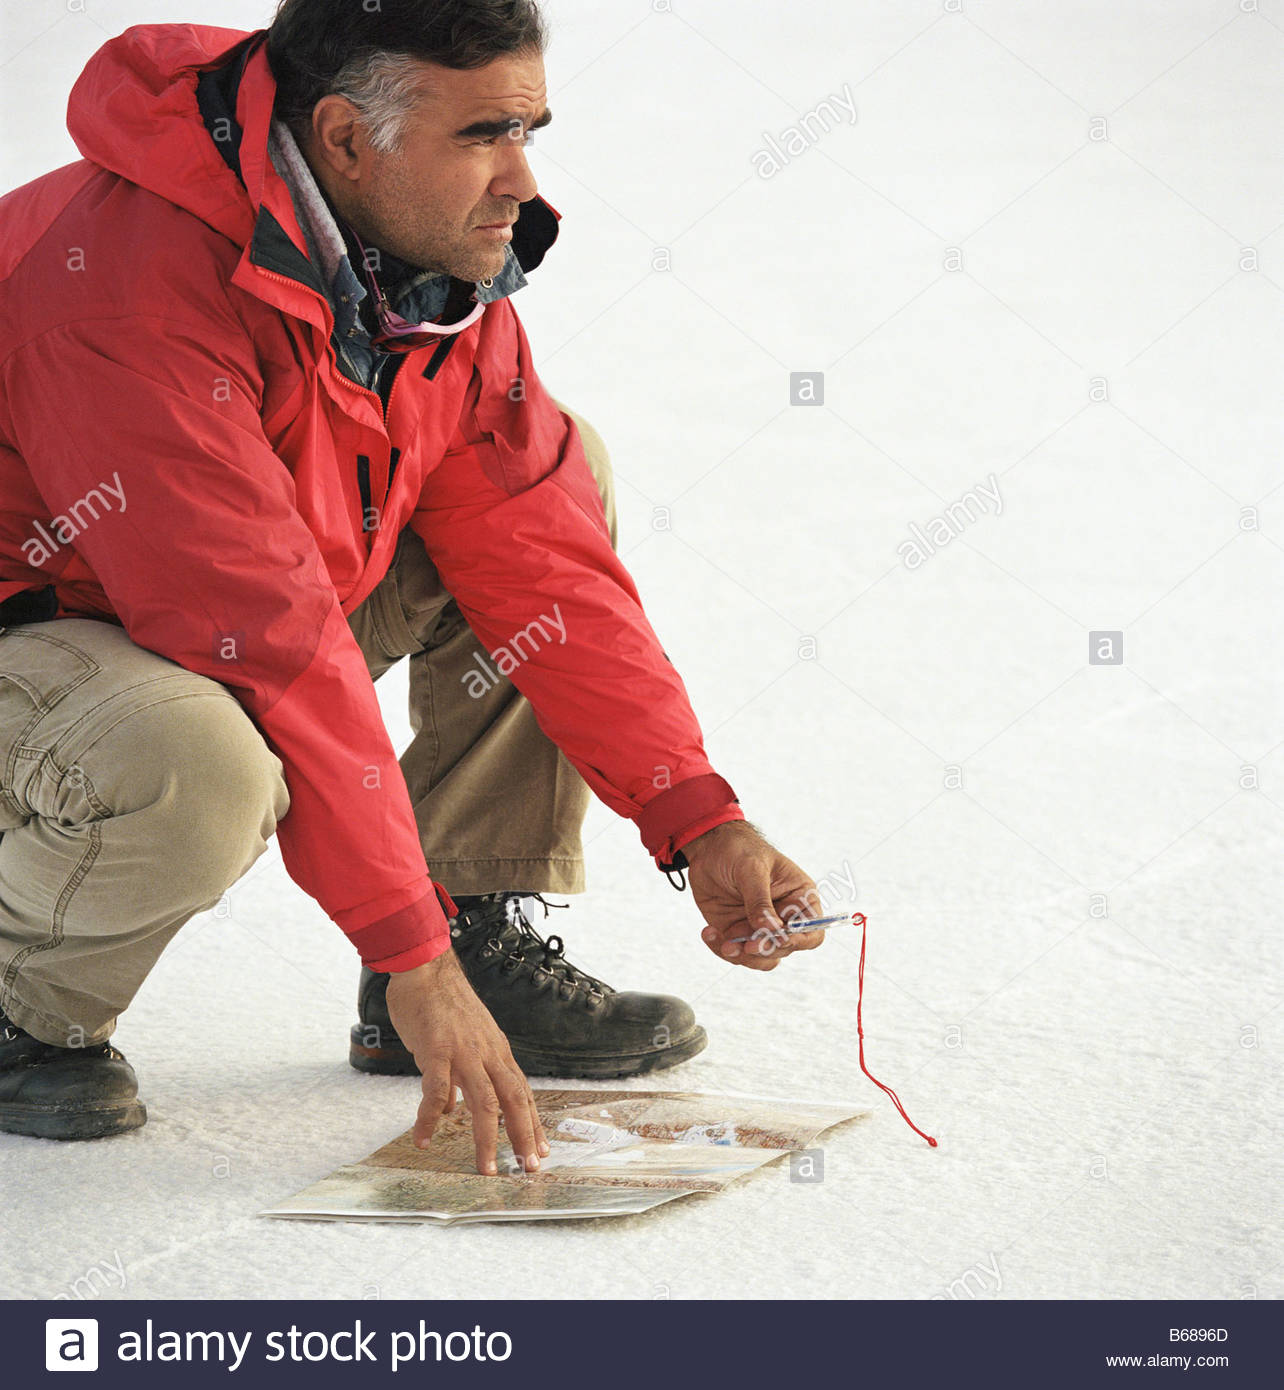 Man crouching in the desert with map - Stock Image